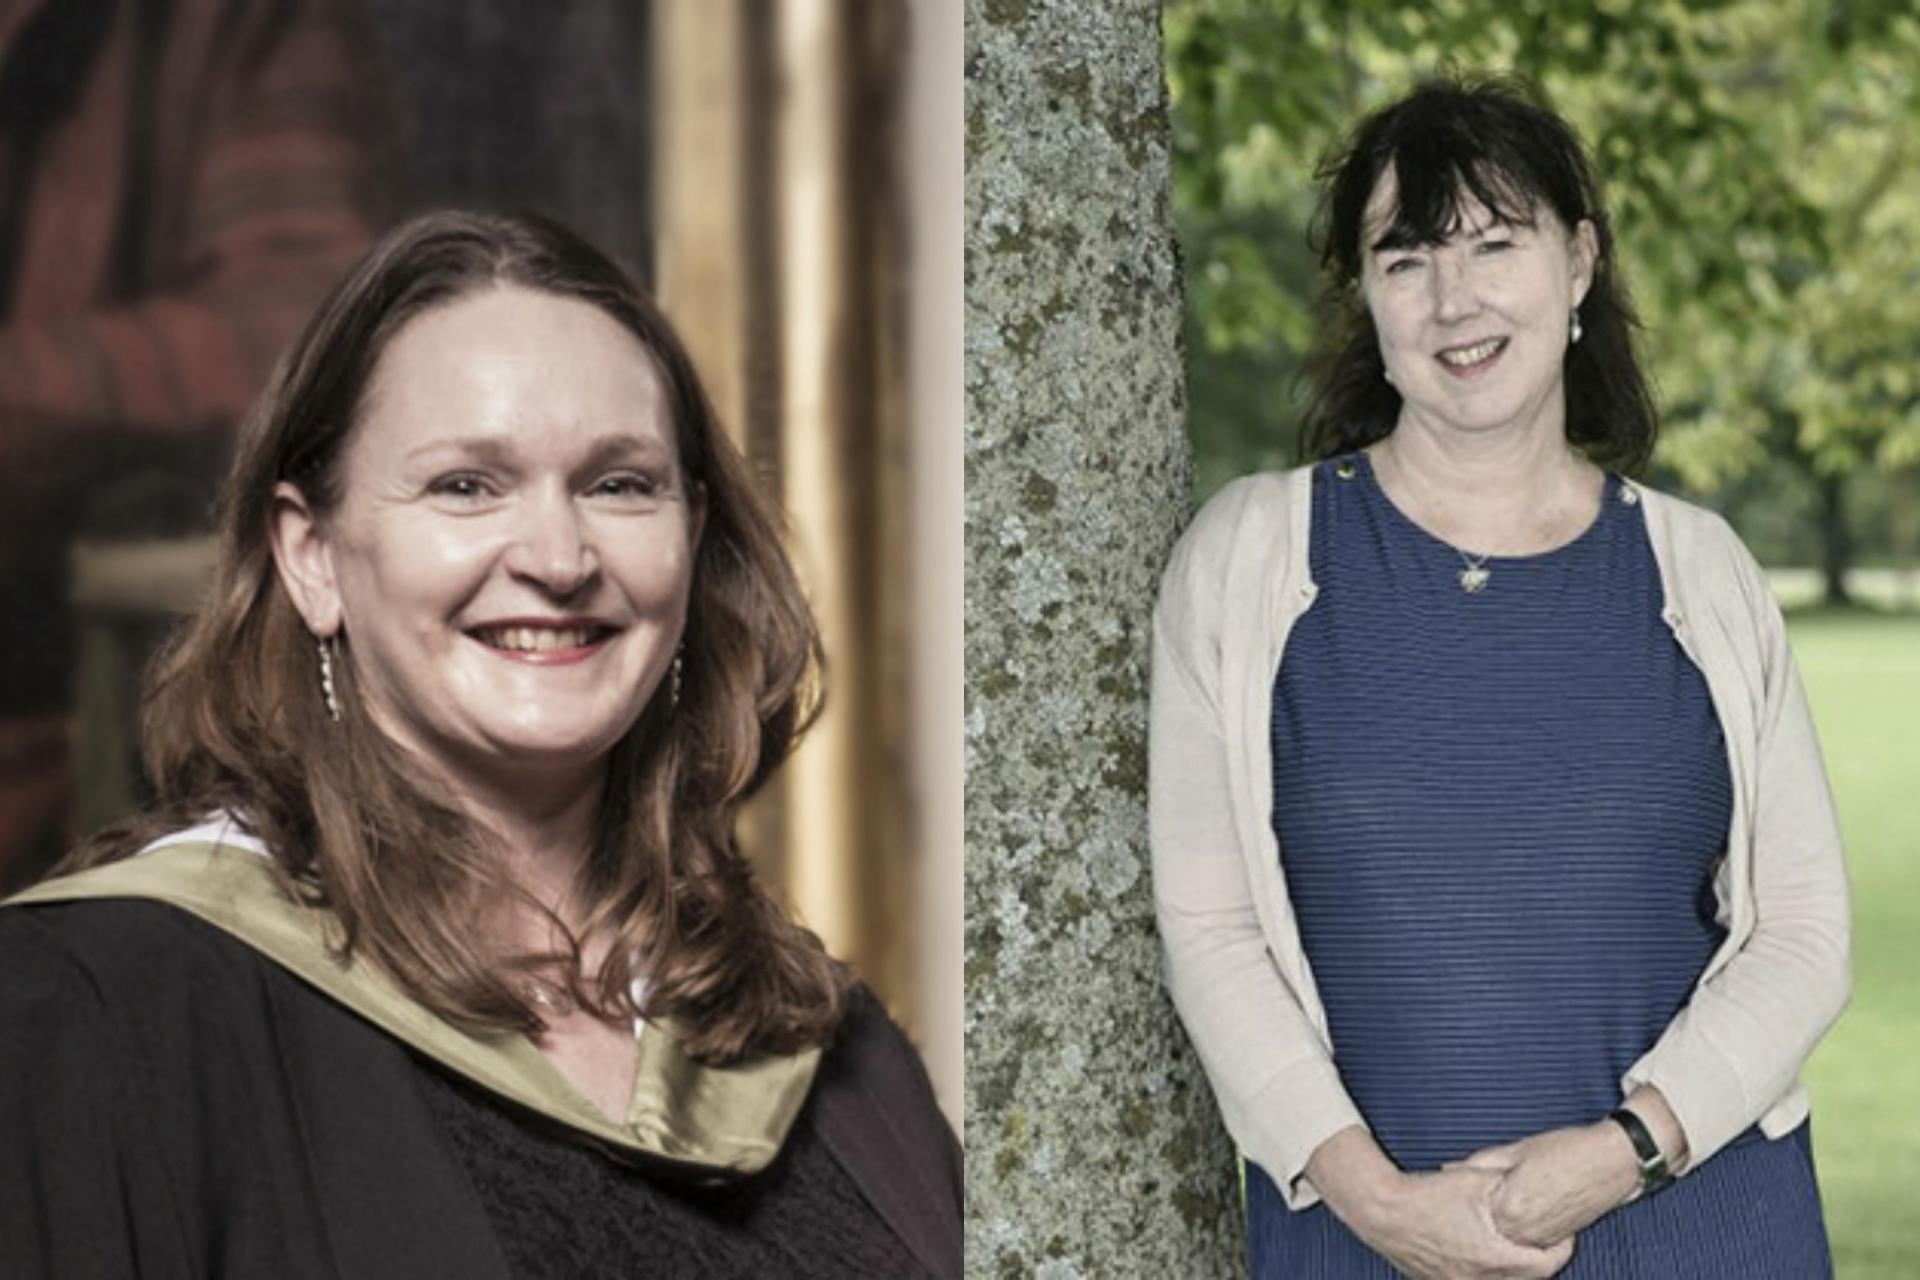 Professors Lesley McAra and Susan McVie